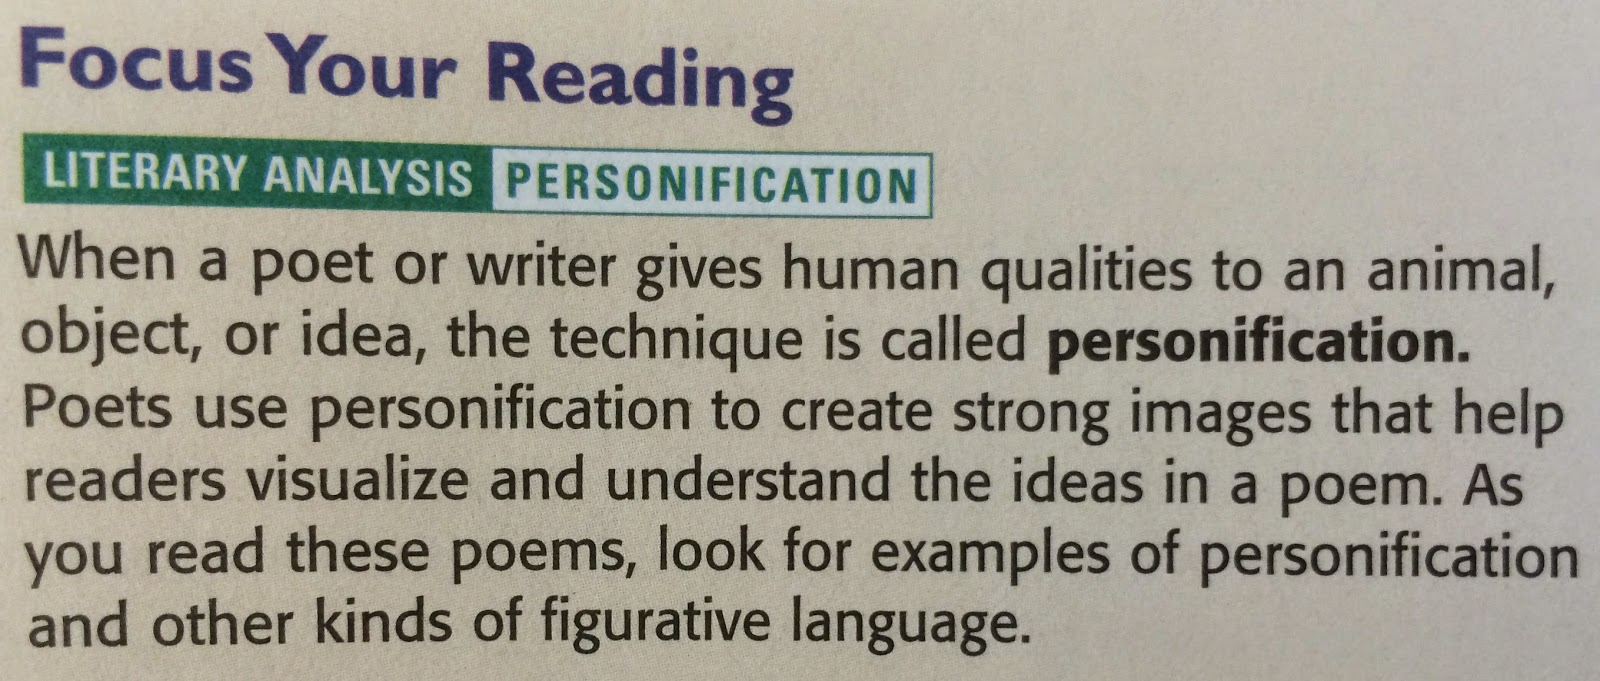 language arts mr mcginty personification in poetry as you today s poems be on the lookout for personification as the poets work to give human qualities to things that are decidedly non human